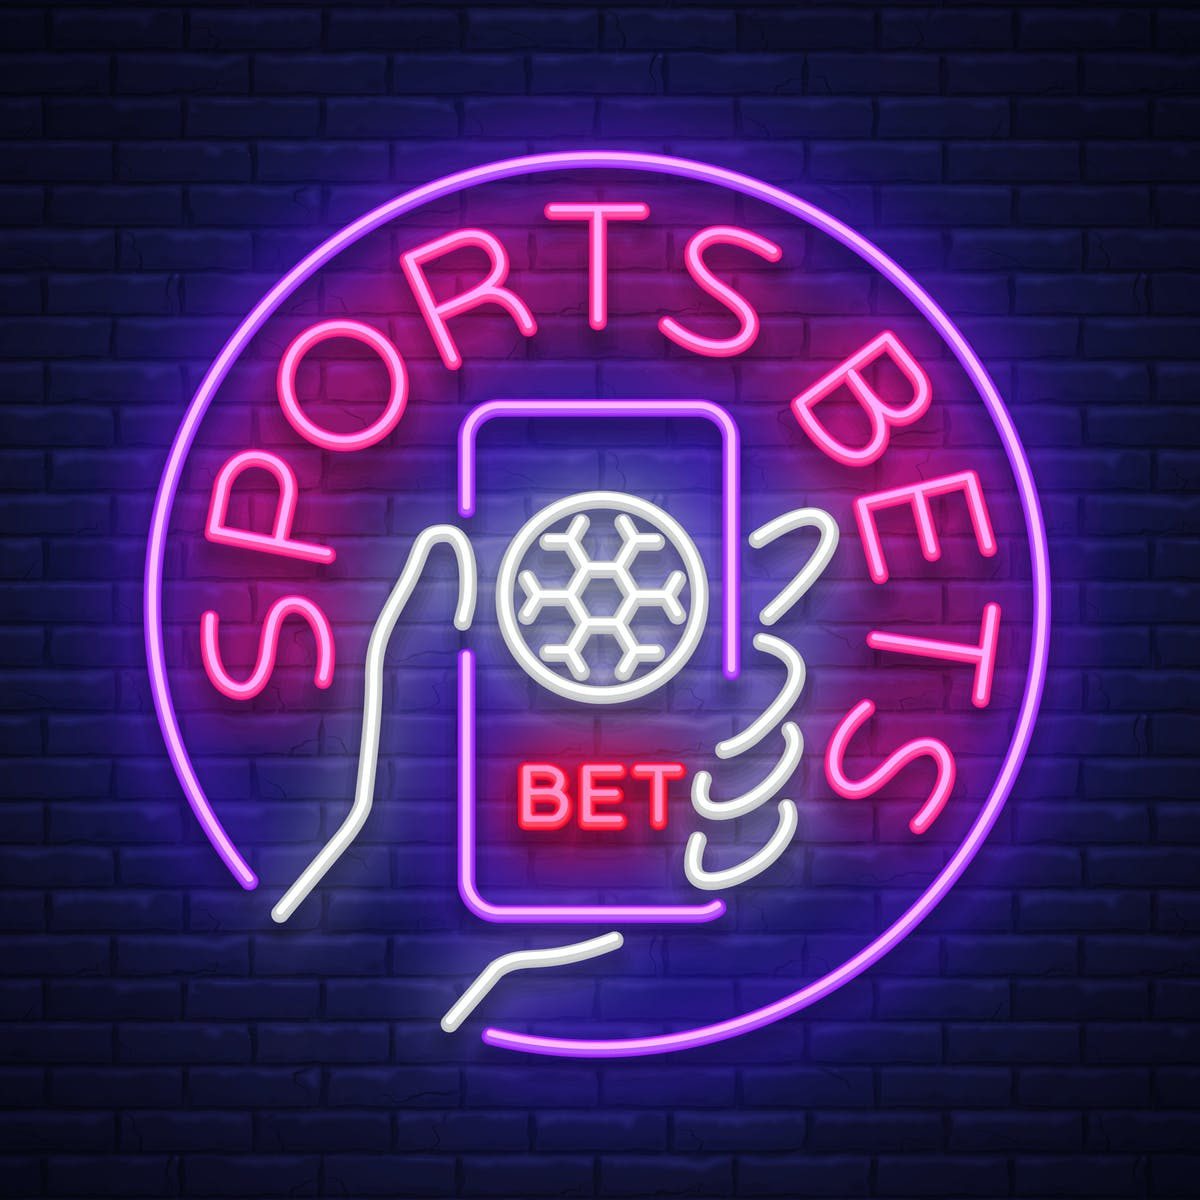 As states legalize sports betting, will sports media go all-in?